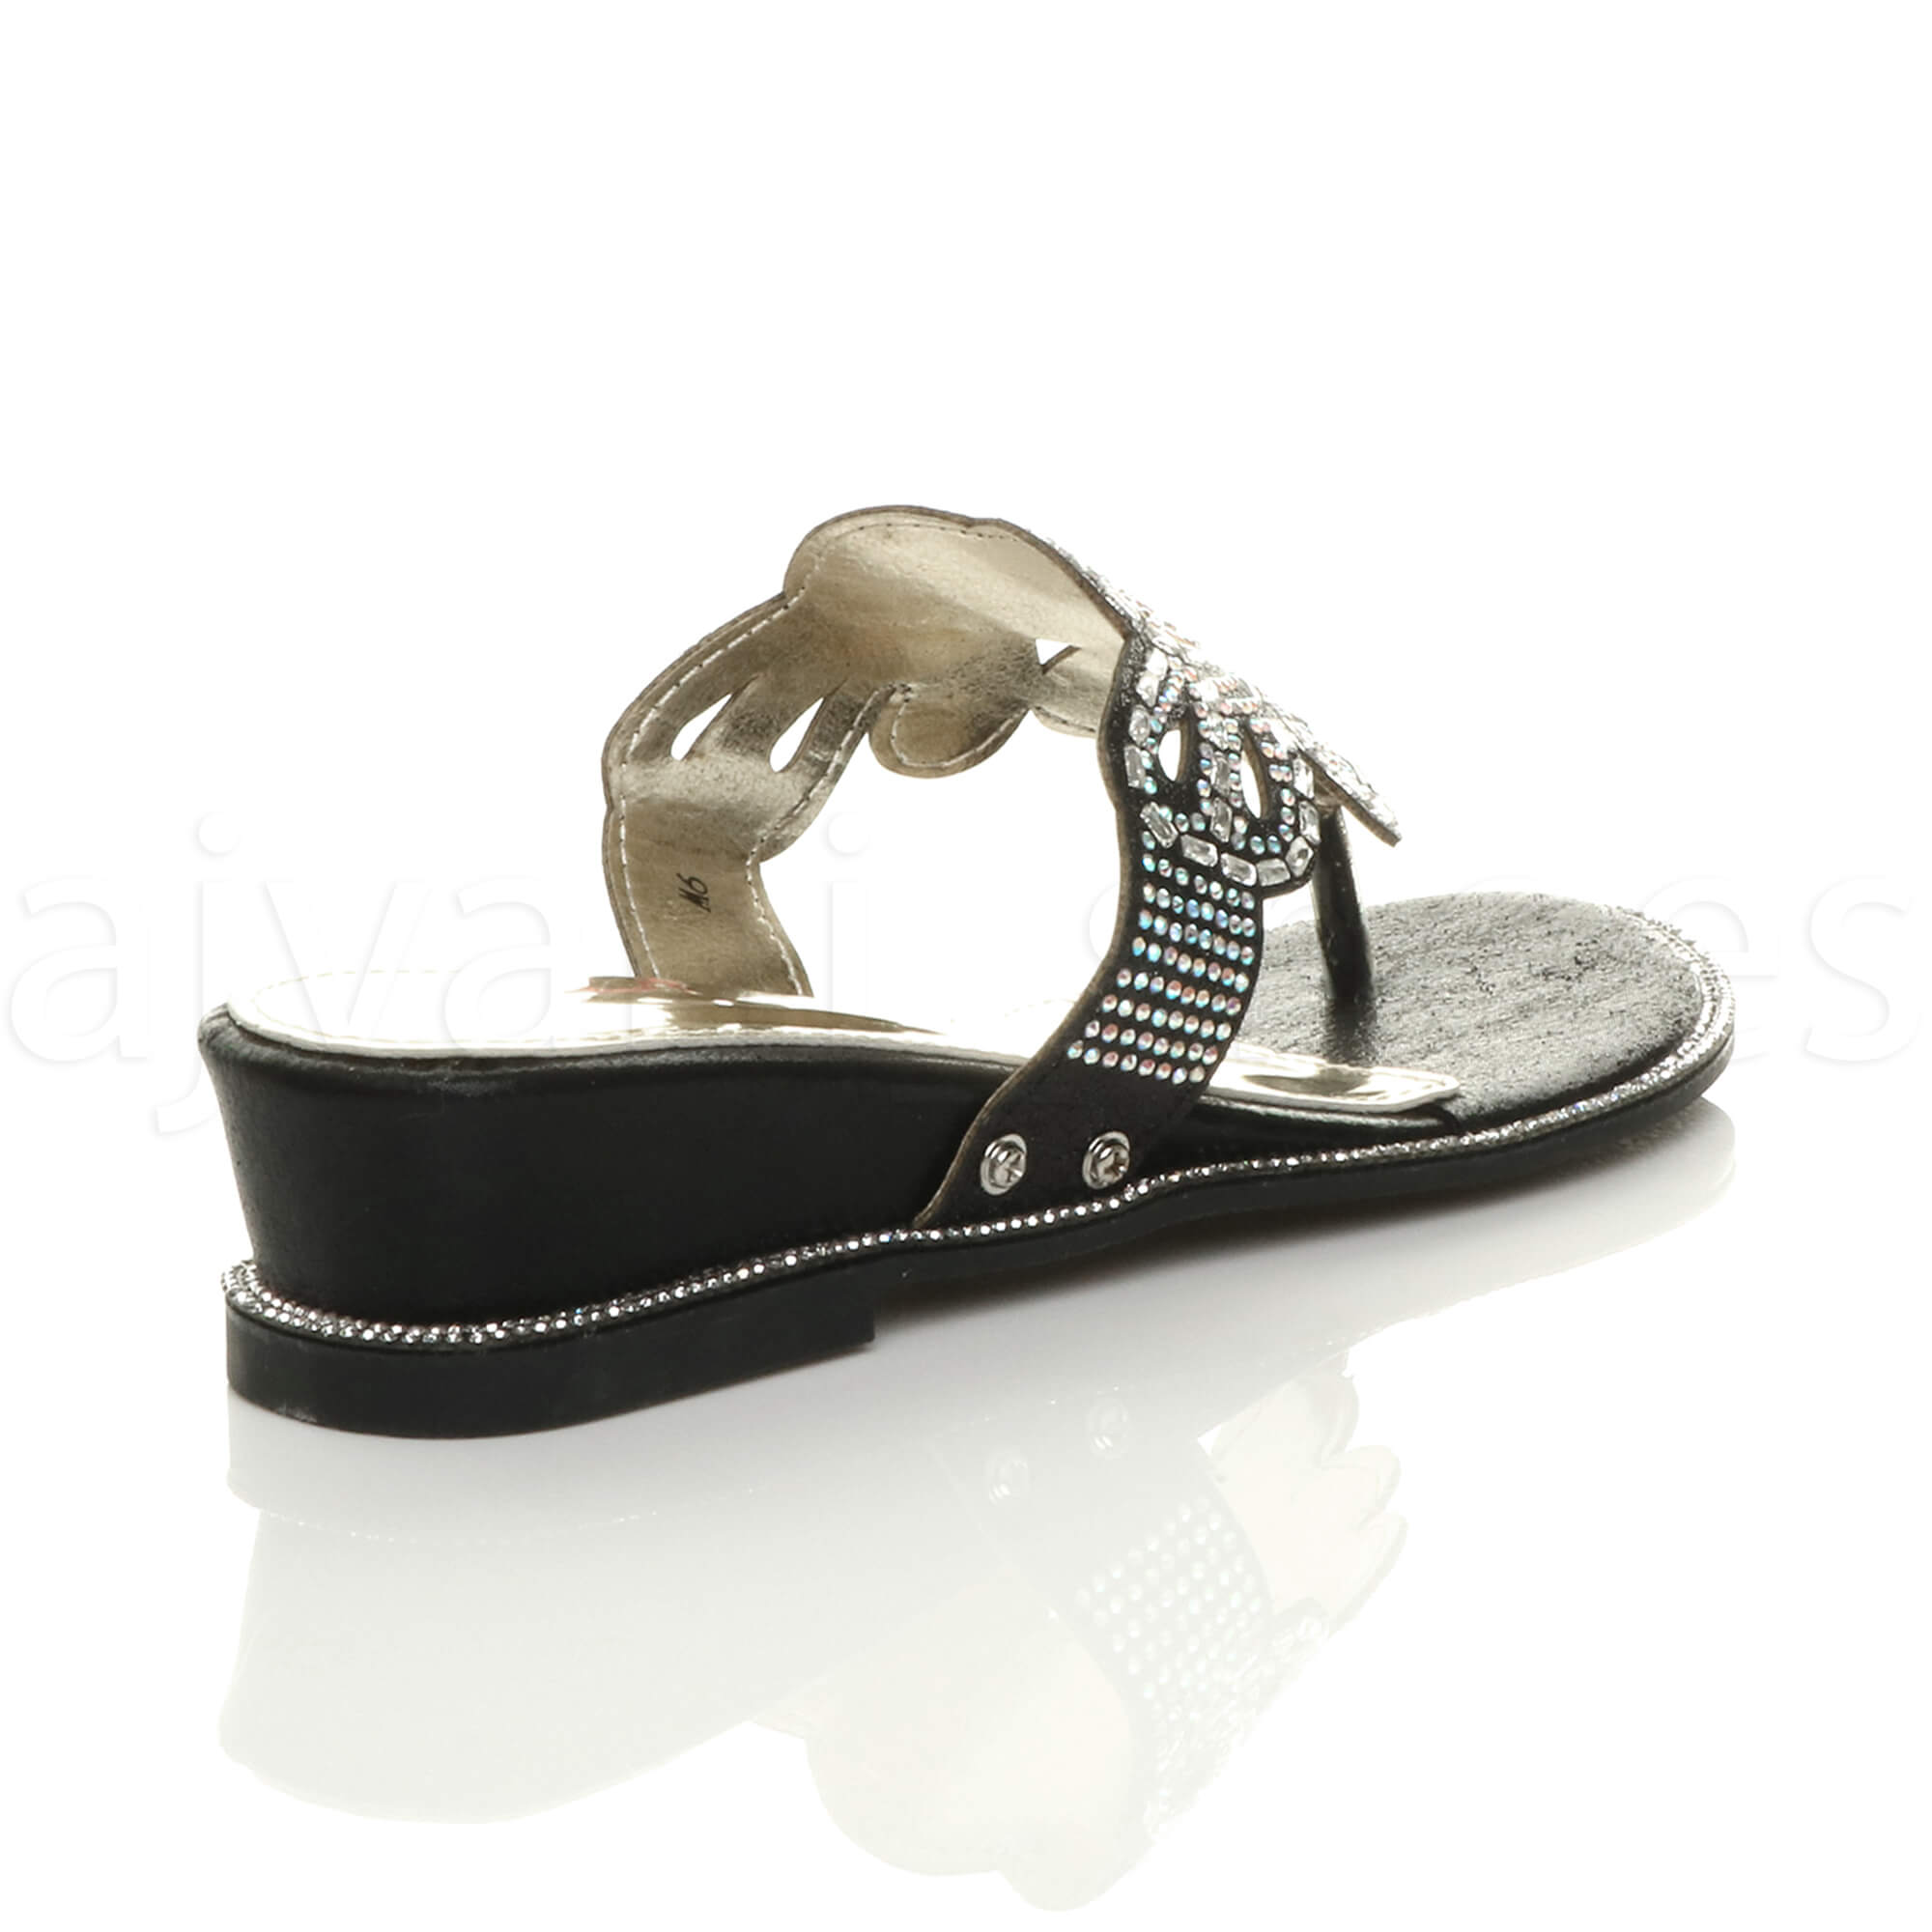 WOMENS-LADIES-LOW-MID-WEDGE-HEEL-DIAMANTE-EVENING-TOE-POST-SANDALS-MULES-SIZE thumbnail 5